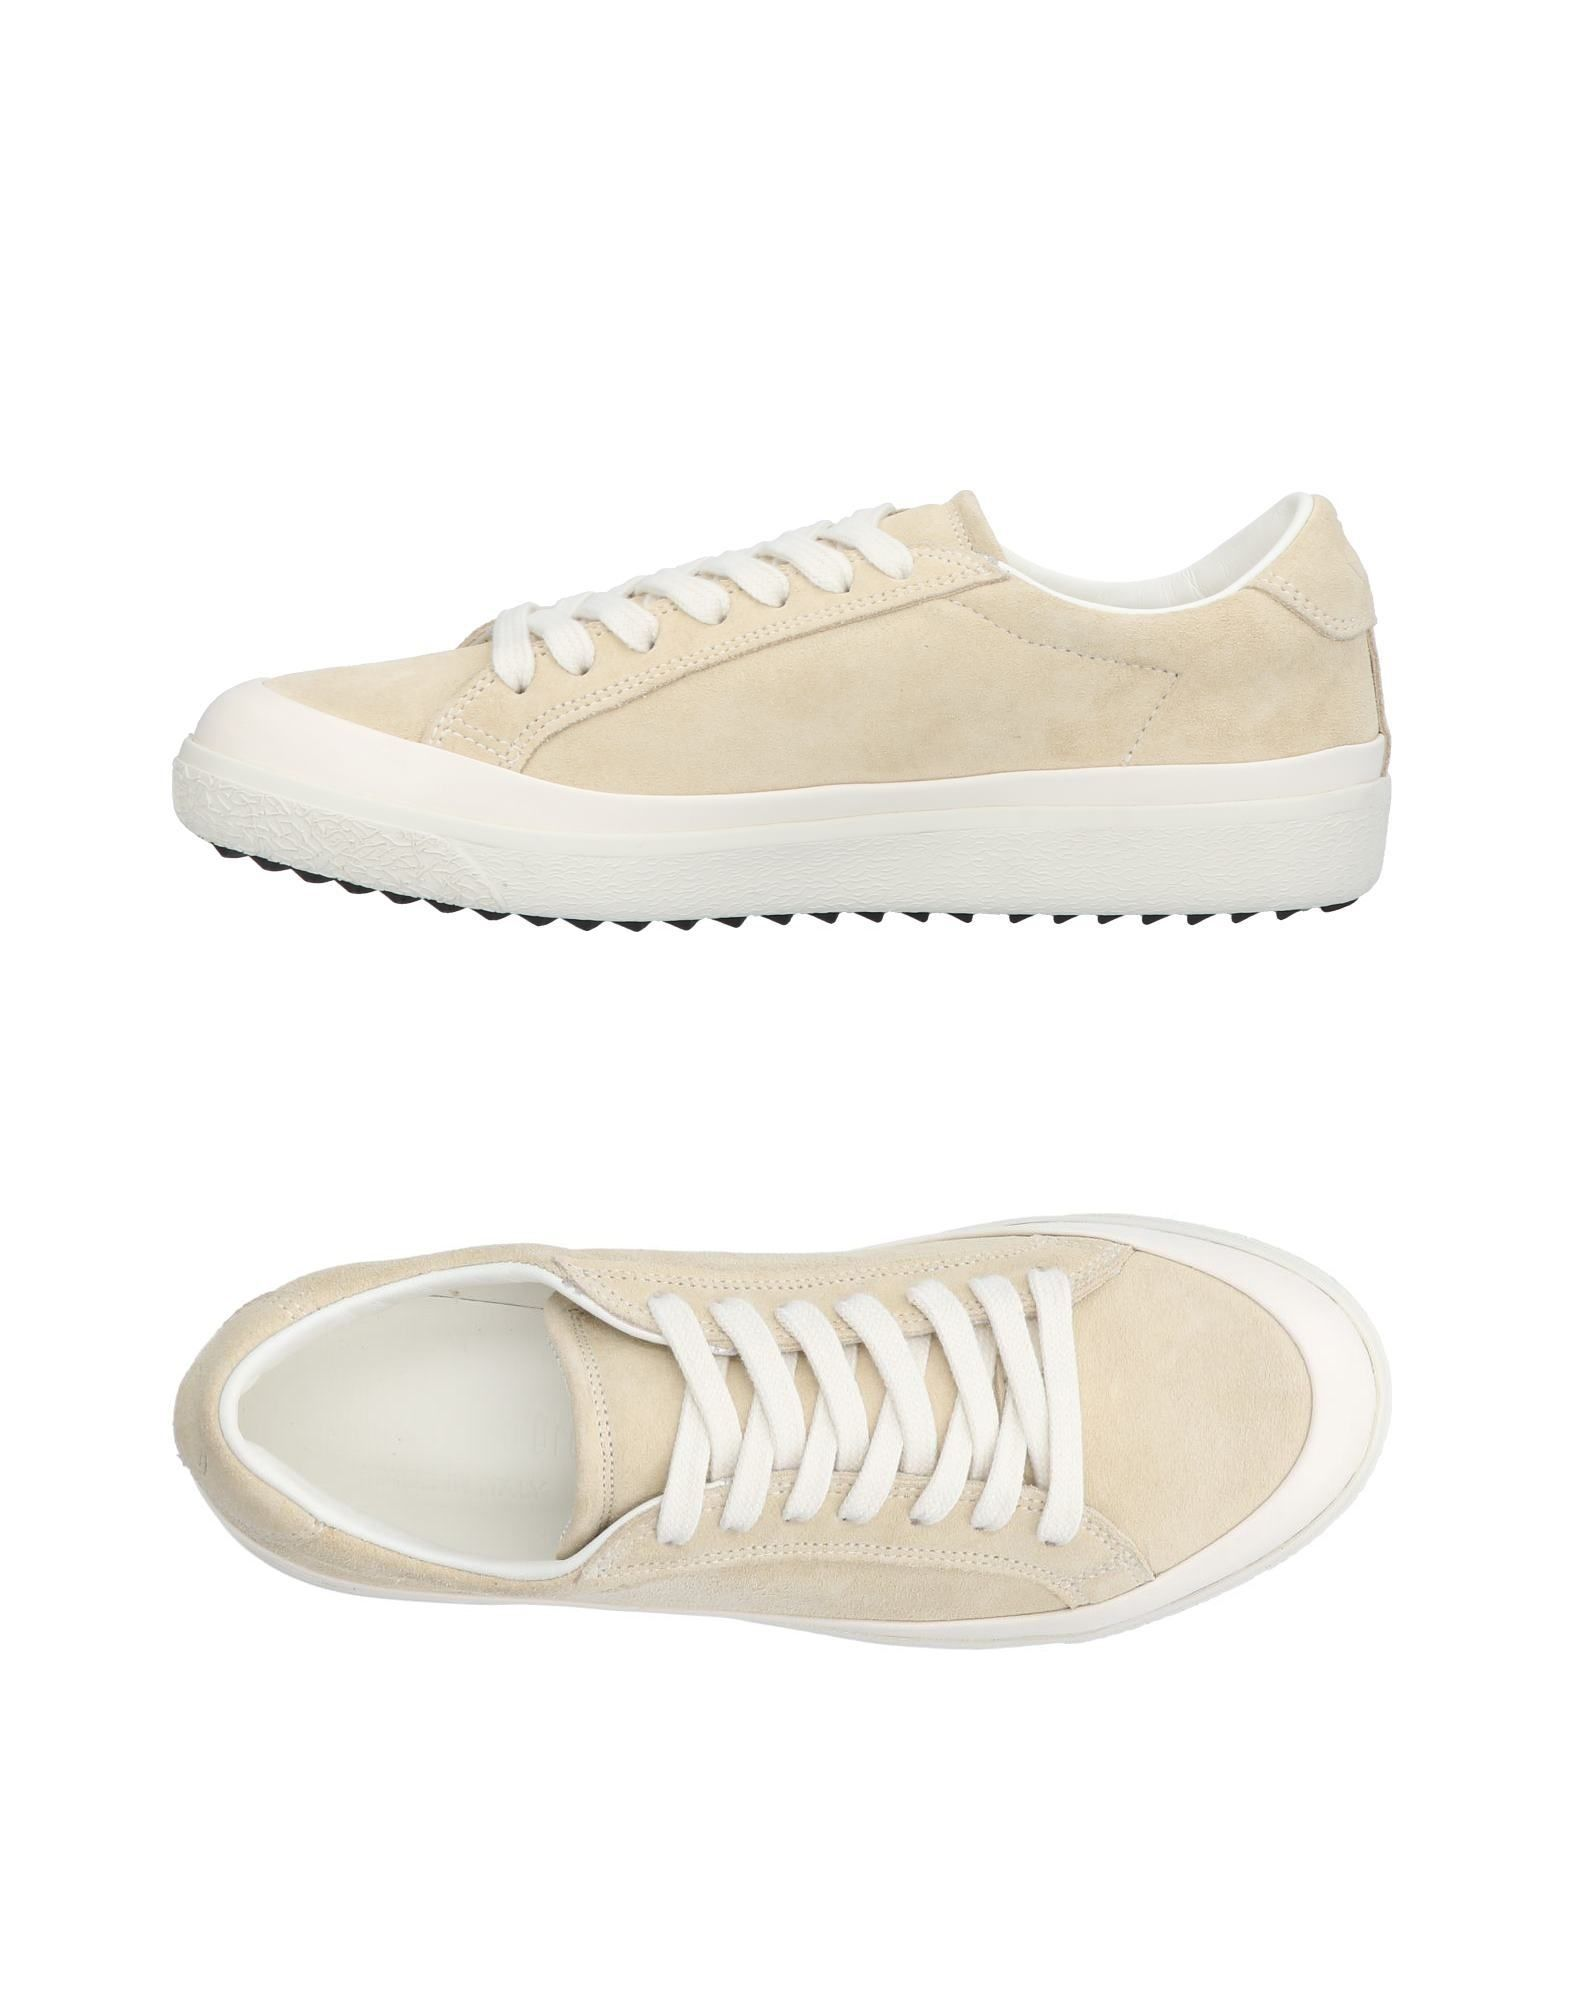 Sneakers Donna Pantofola D'oro Donna Sneakers - 11456983QL 20f826